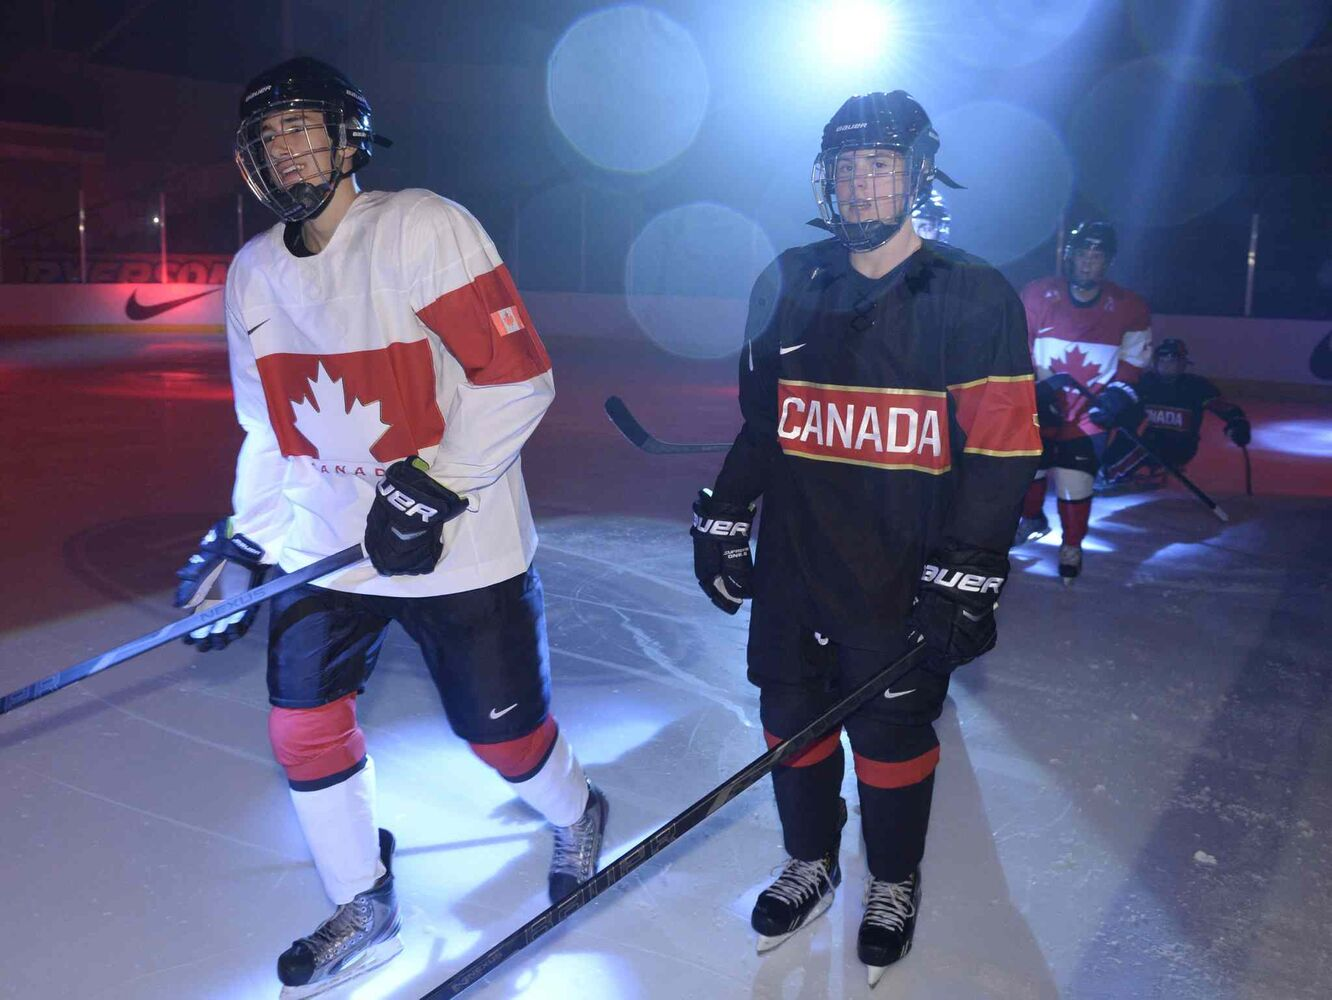 Youth players model the new Canadian Olympic team hockey jerseys as they are unveiled in Toronto. (Frank Gunn / The Canadian Press)